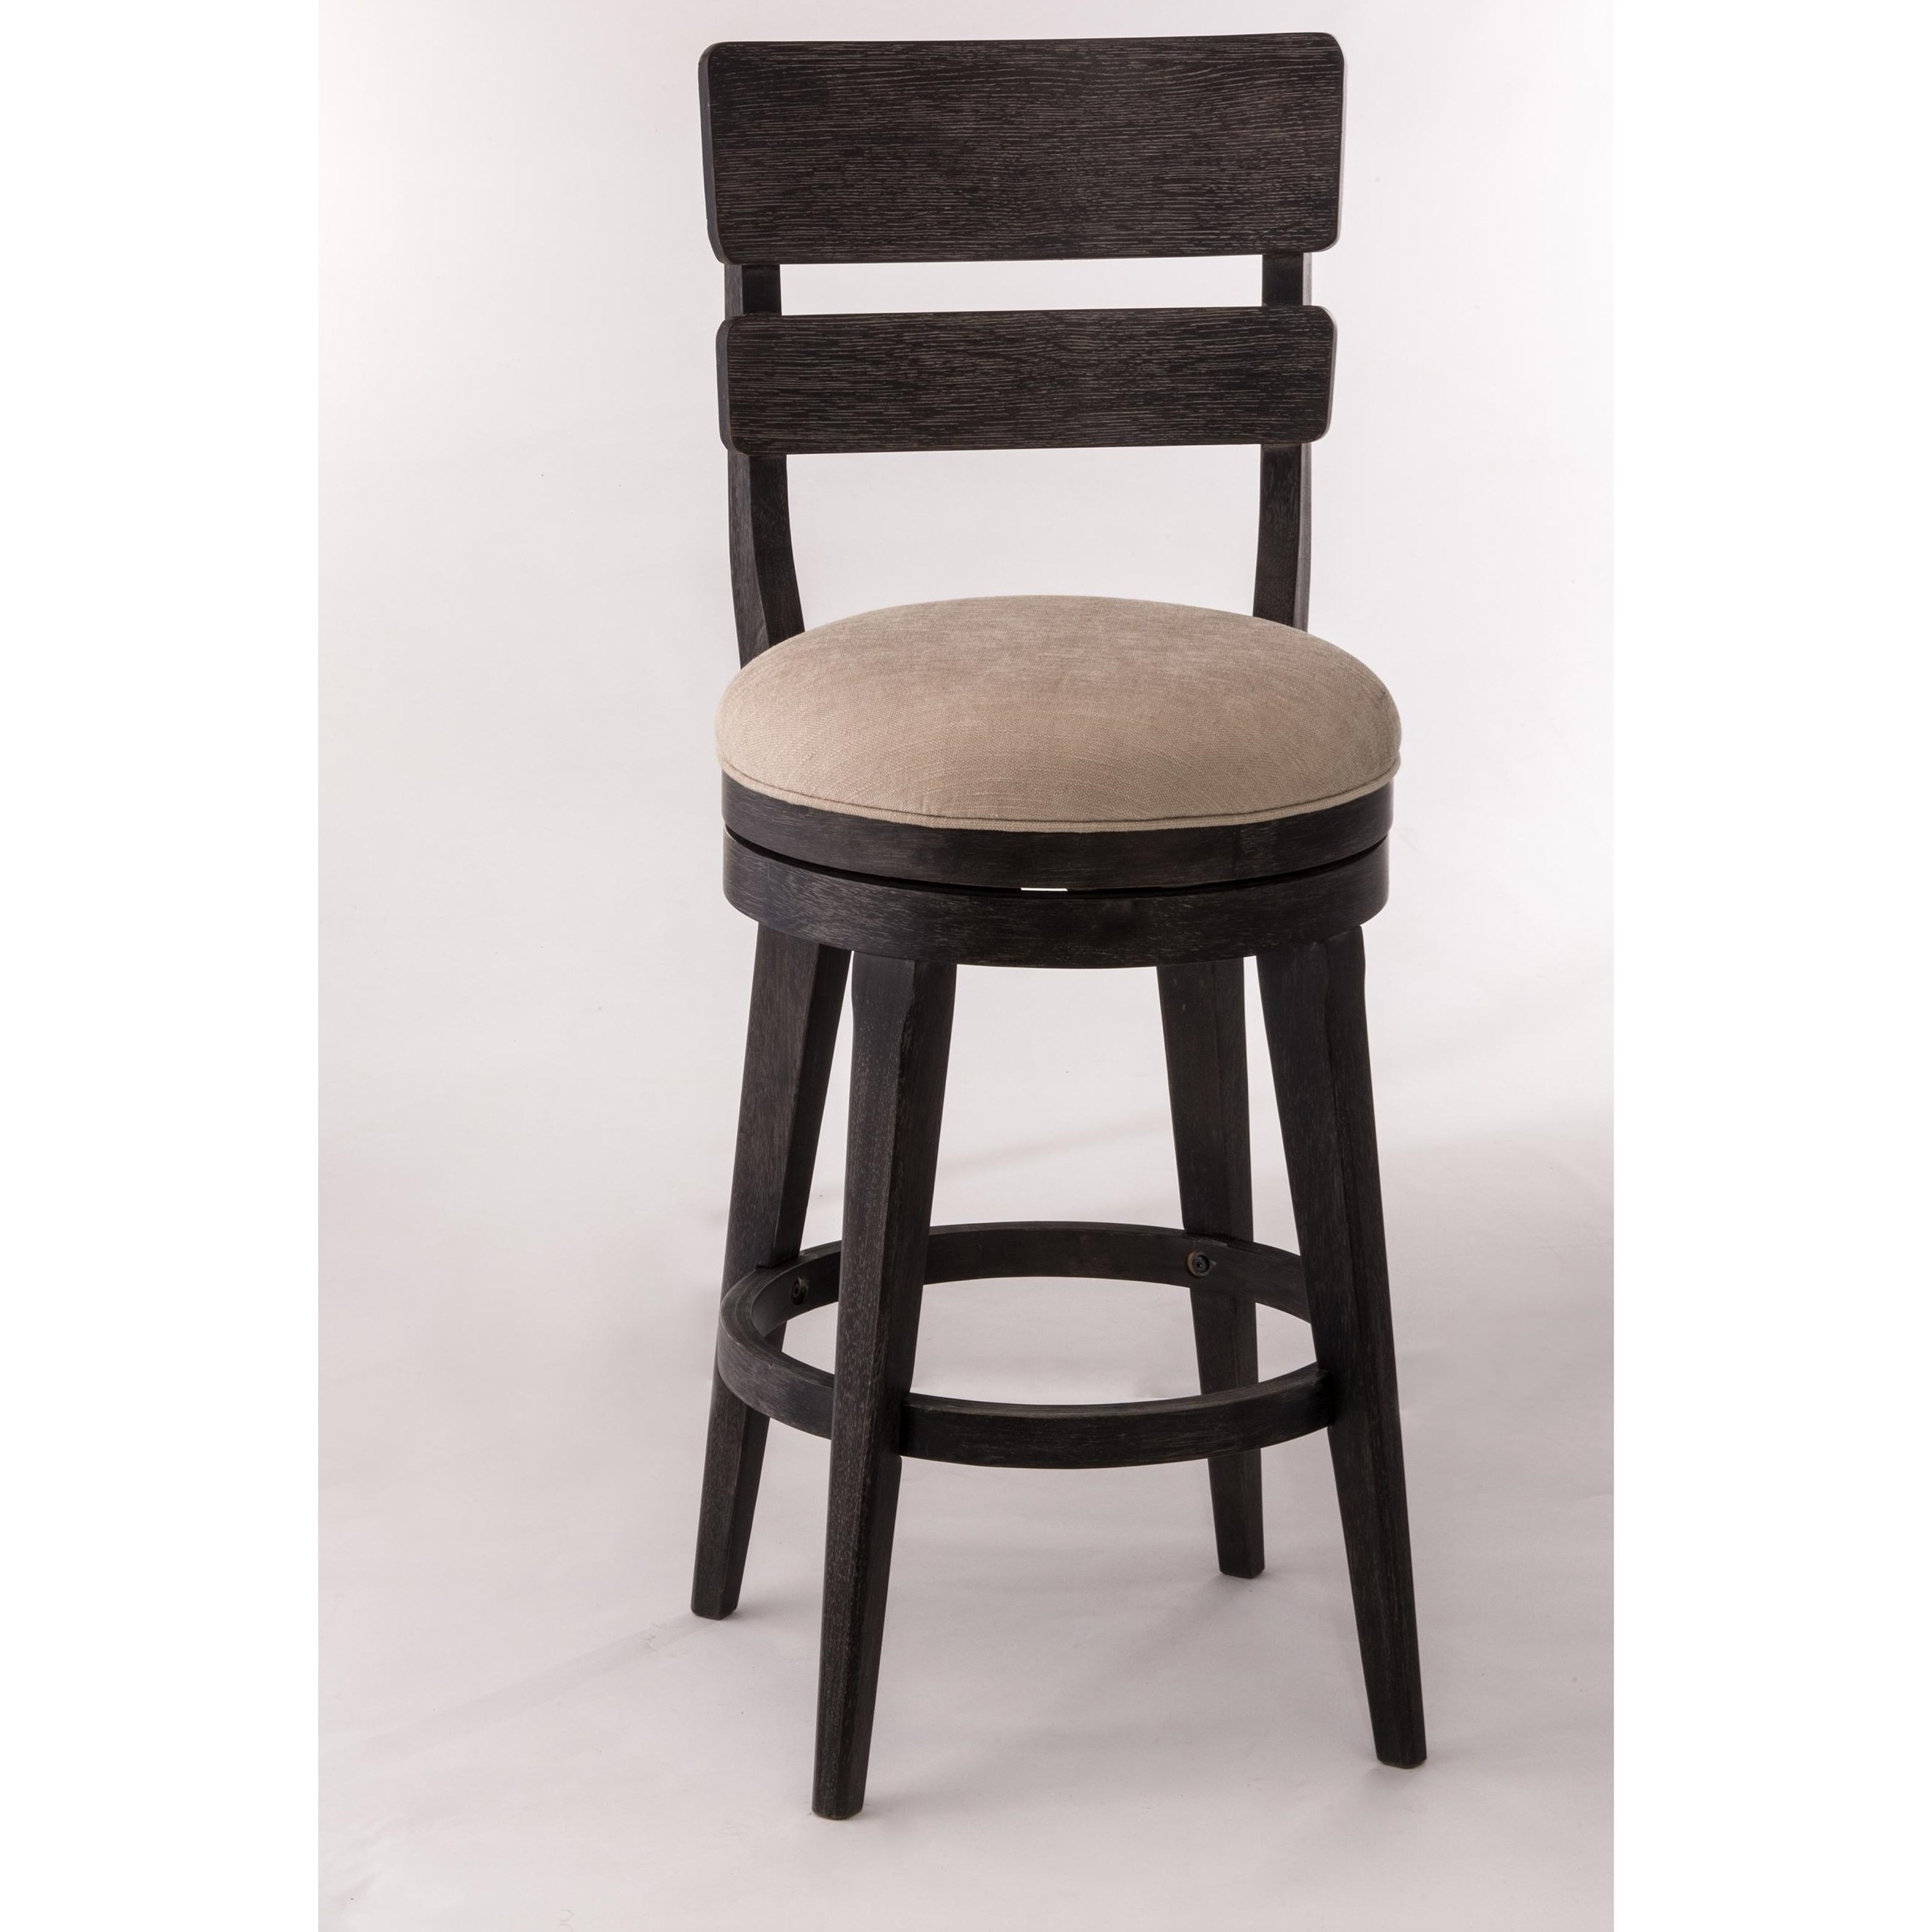 Hillsdale Wood Stools Upholstered Swivel Counter Stool  : wood20stools5911 828 b1jpgscalebothampwidth500ampheight500ampfsharpen25ampdown from www.furnitureappliancemart.com size 500 x 500 jpeg 25kB